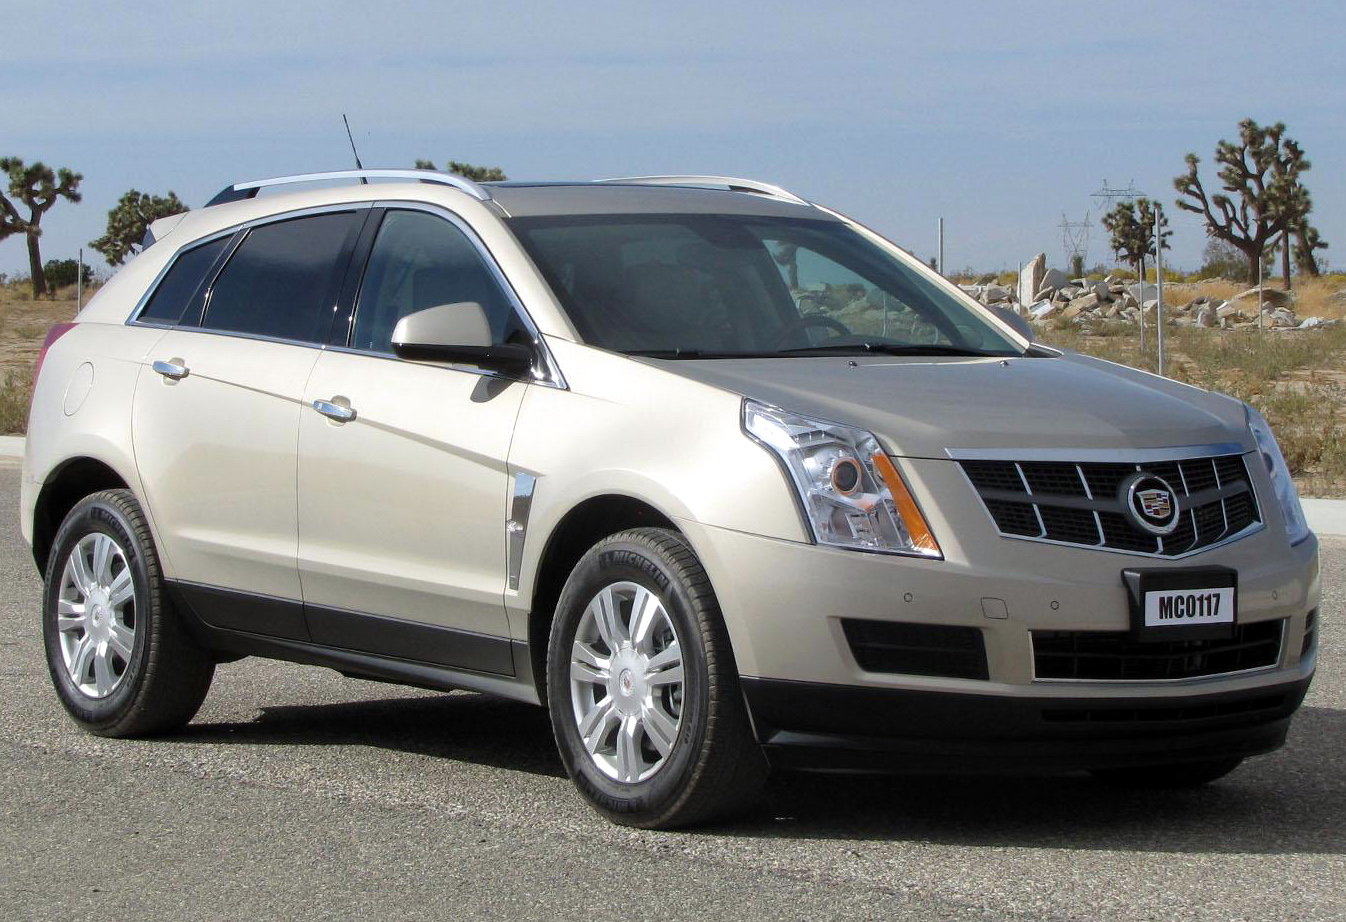 cadillac-srx-center-cap.jpg